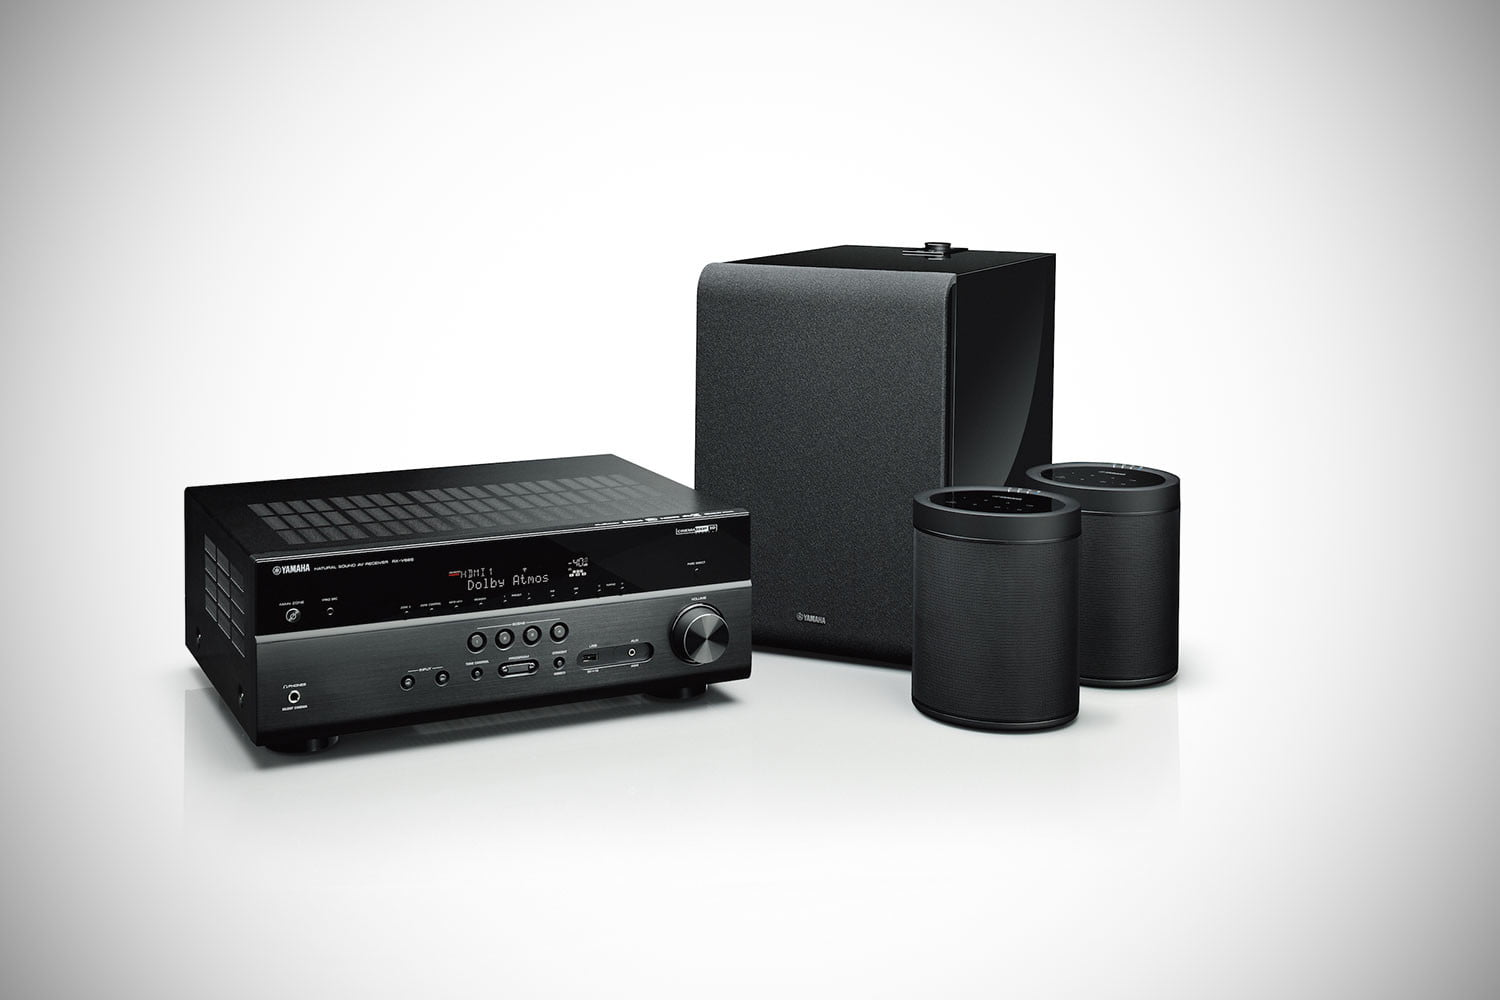 Yamaha Ditches The Wires With New Musiccast Surround Receivers And Wiring Multi Room Speaker System Impressed Us When Company First Introduced Technology Leading At Time To Declare It Best Multiroom Solution Since Sonos